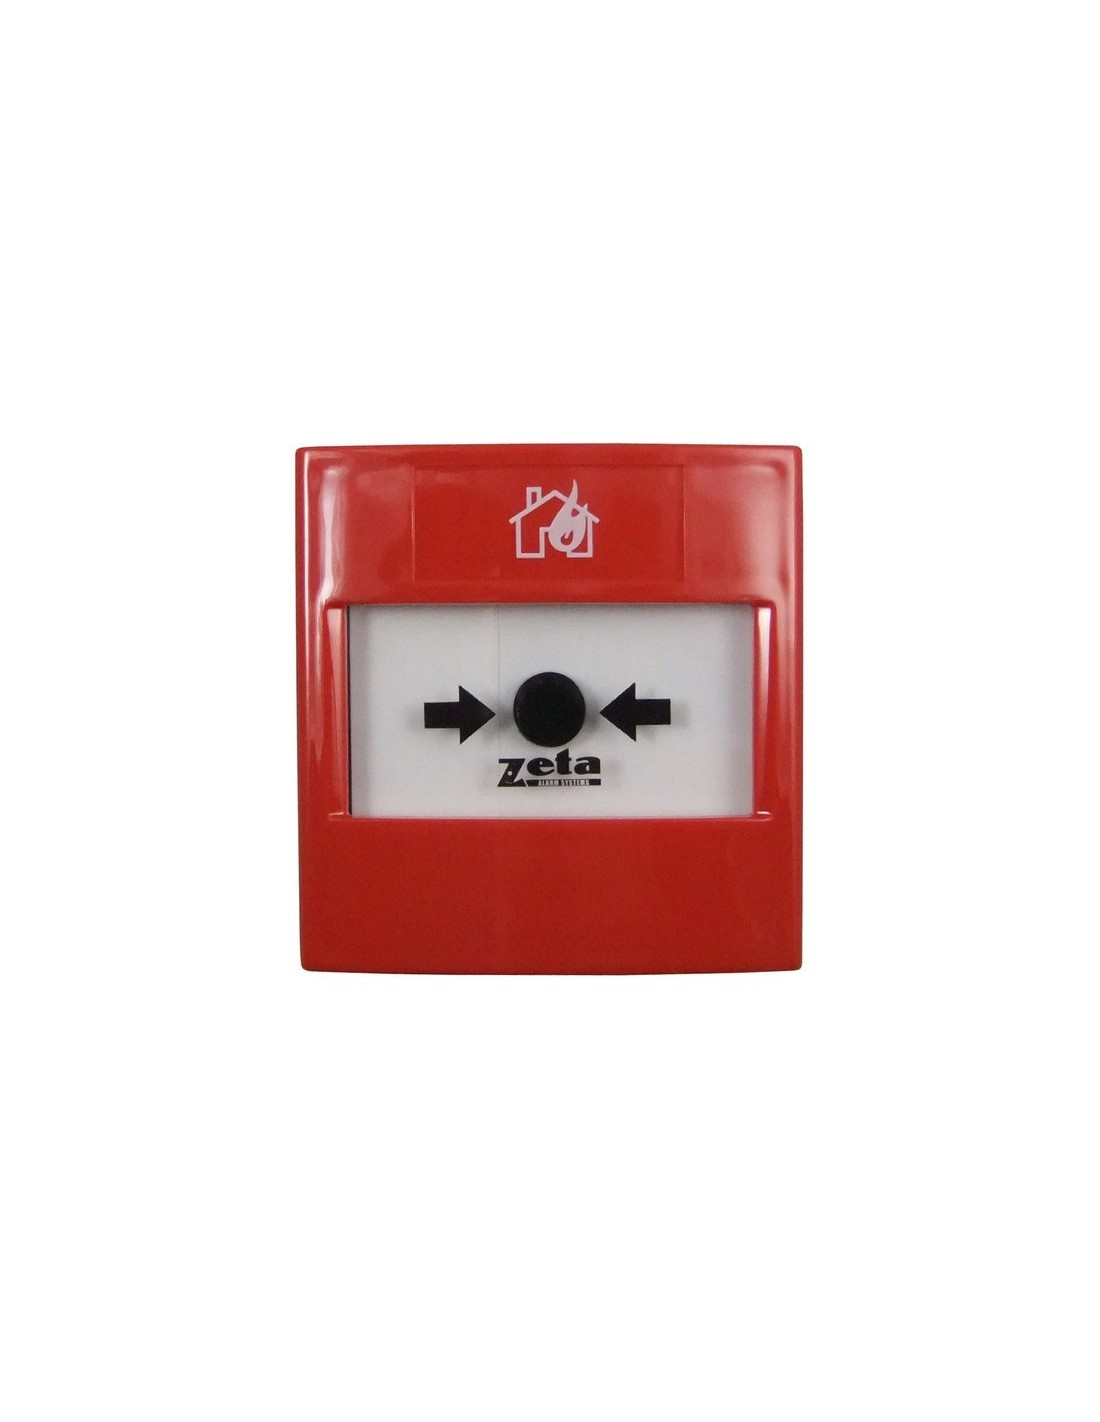 fire alarm systems a reference manual pdf